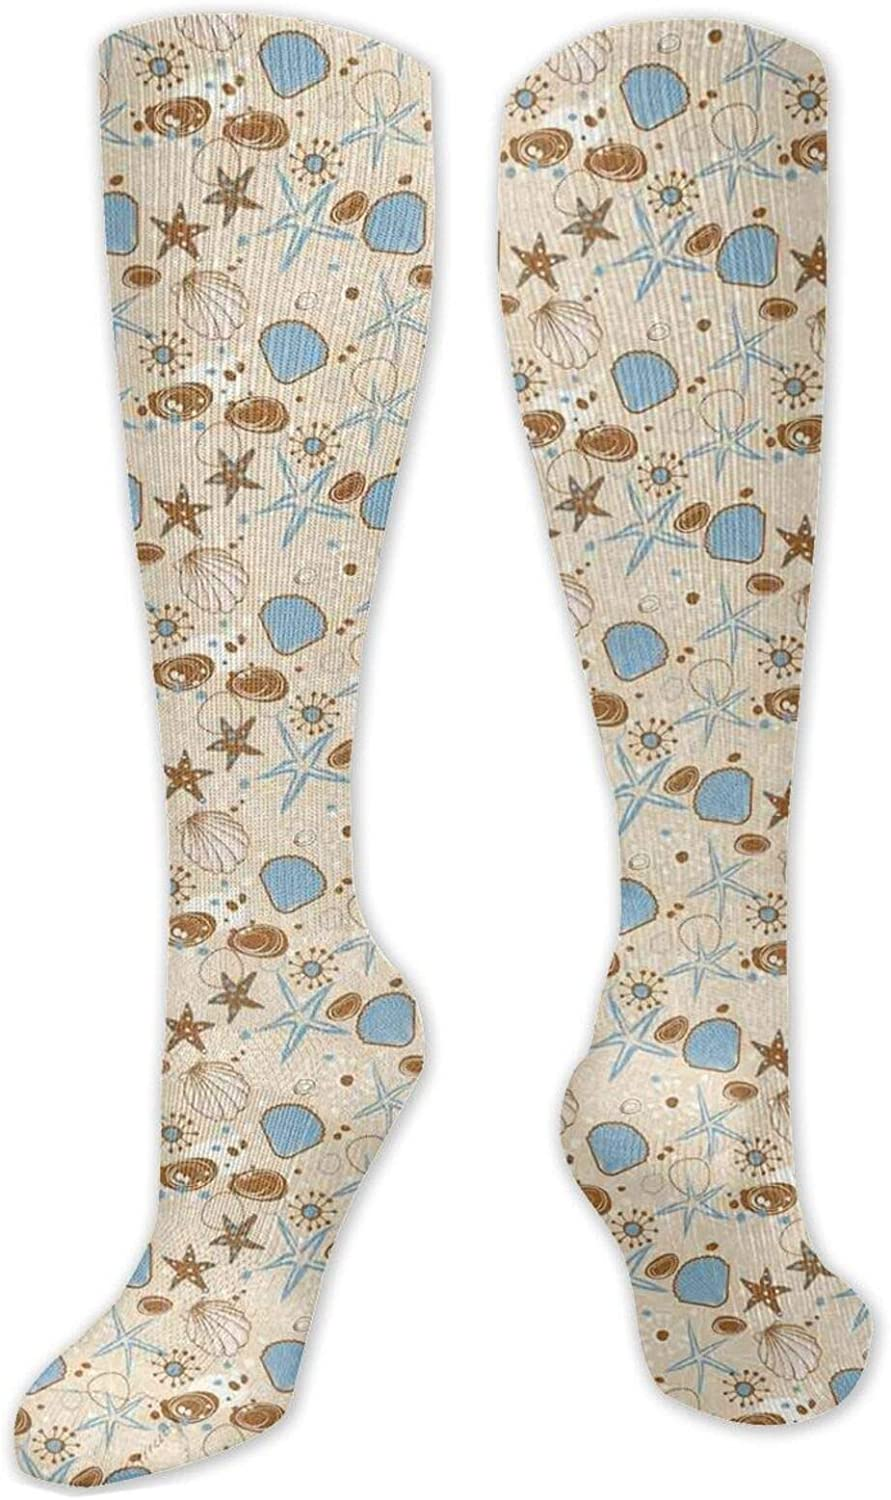 OFFicial site Compression High Socks Abstract Starfishes Spiral Doo Lines With 100% quality warranty